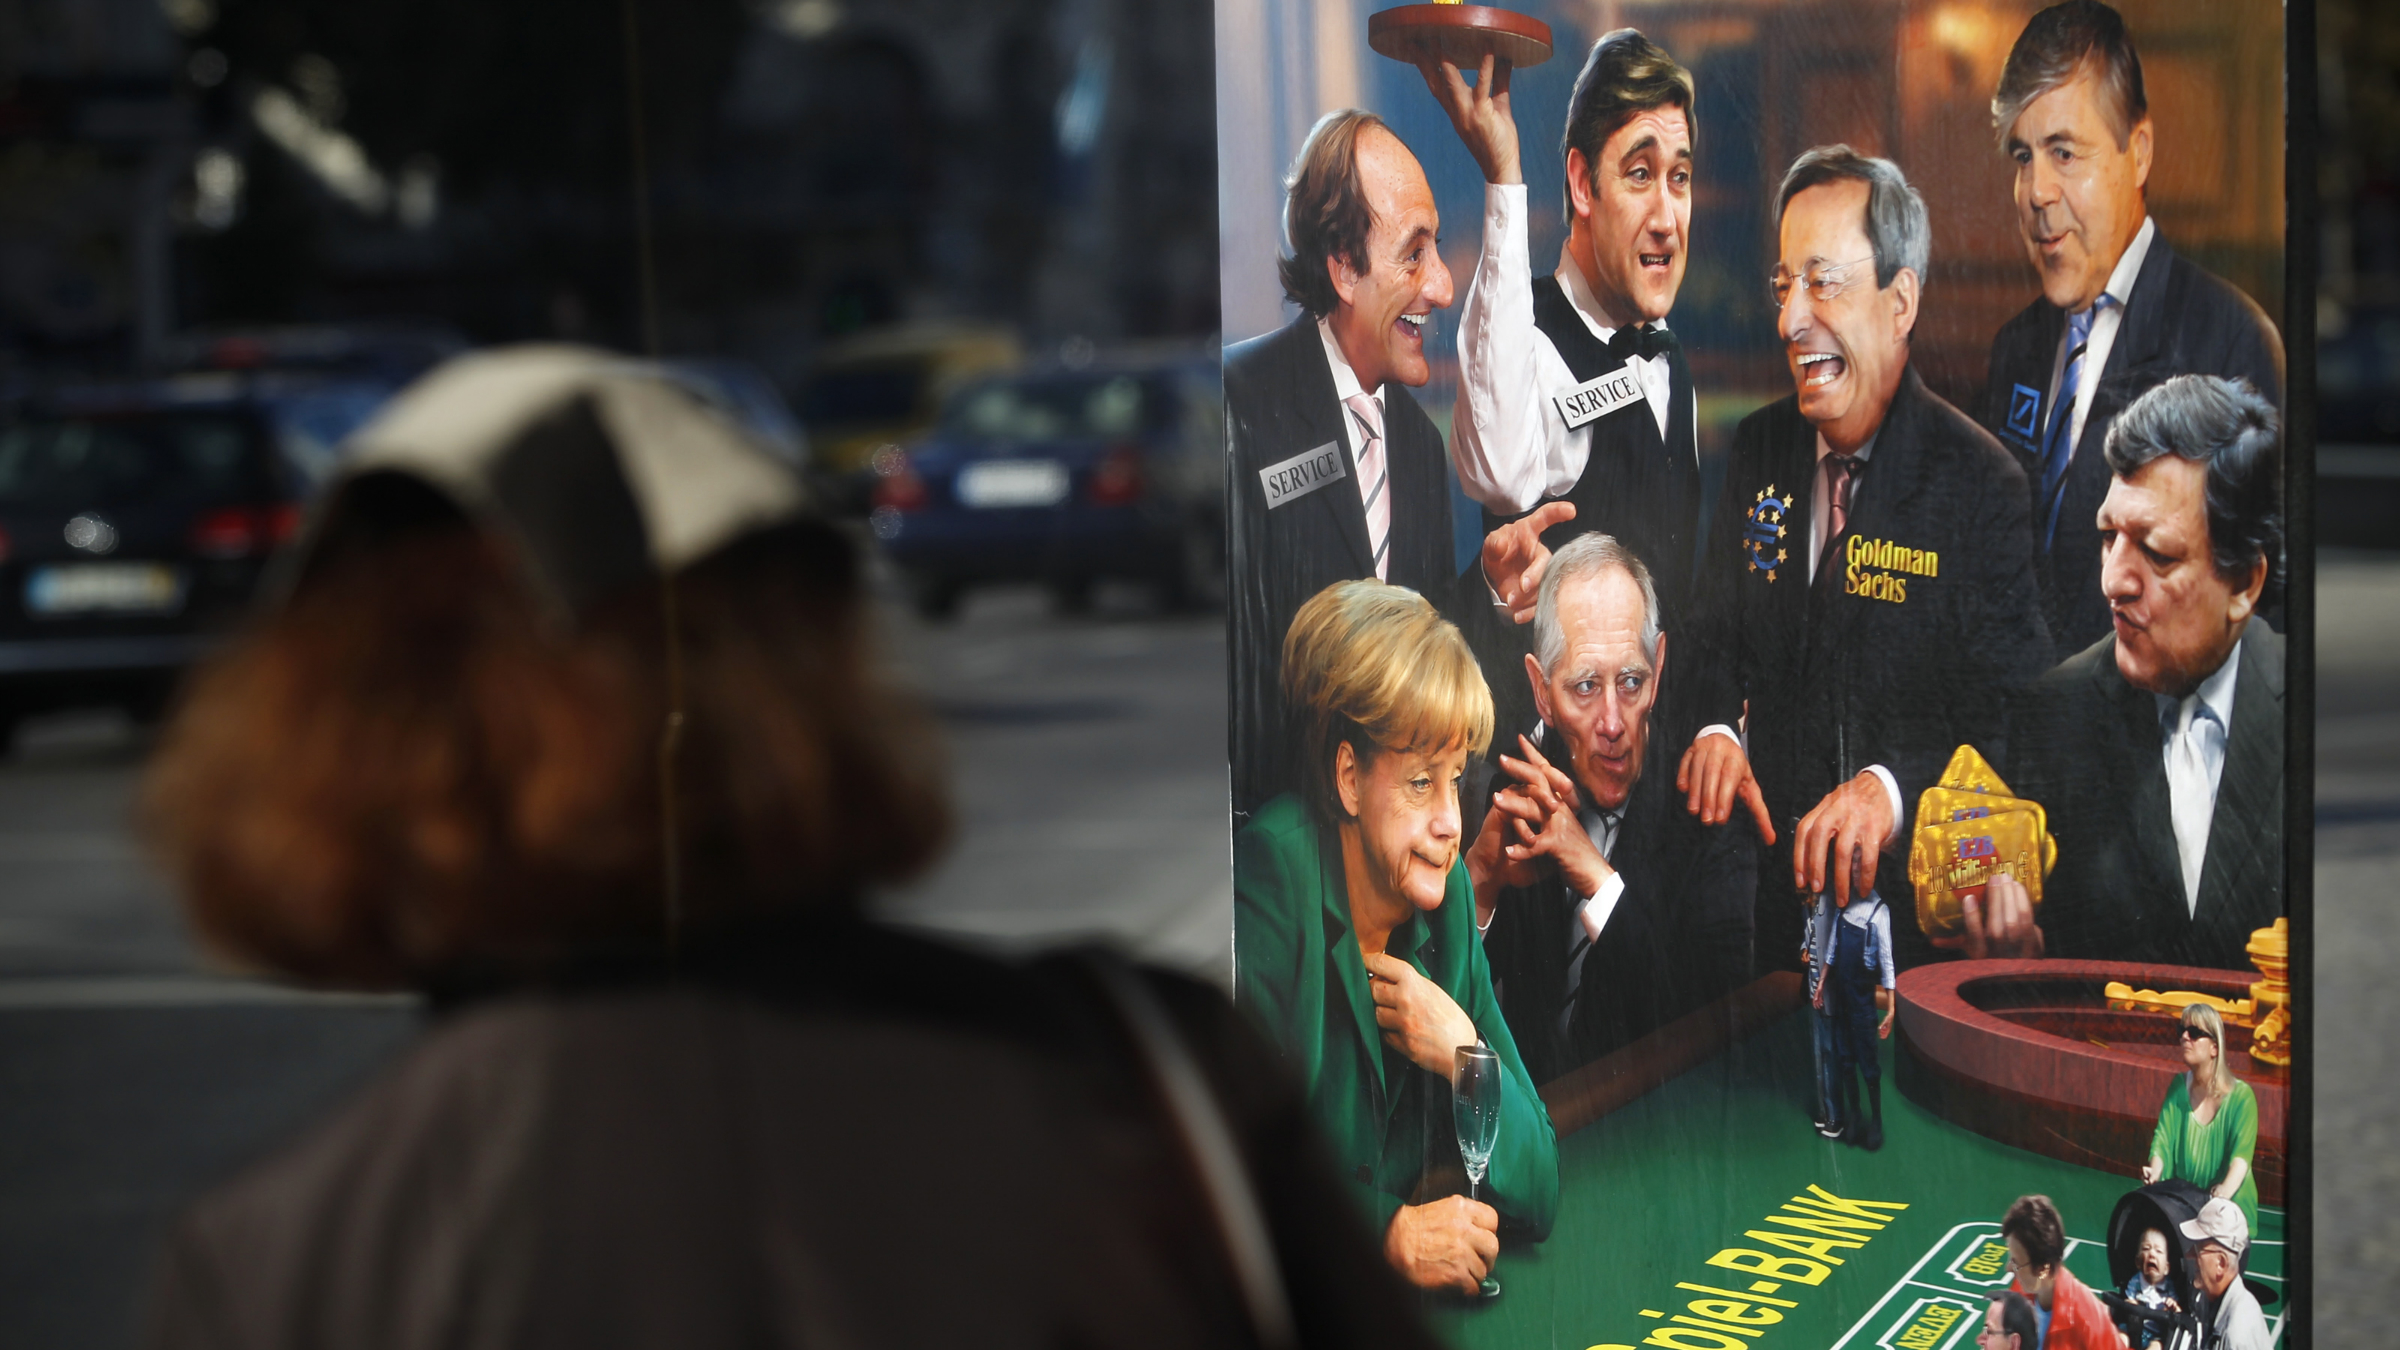 A woman looks at a board depicting Germany's Chancellor Angela Merkel, Portugal's Prime Minister Pedro Passos Coelho and Foreign Minister Paulo Portas, the President of the European Commission Jose Manuel Barroso, the President of the European Central Bank Mario Draghi, and the CEO of the Deutsche Bank Josef Ackermann gambling in a casino, in Lisbon, Tuesday, Nov. 13, 2012. Portuguese main union General Confederation of Portuguese Workers, CGTP, has called for a general strike on November 14, coinciding with similar work stoppages in Spain and Greece, to protest government-imposed austerity measures and labor reforms. The poster was put by a left wing politic party called Bloco Esquerda near a bus stop. (AP Photo/Francisco Seco)